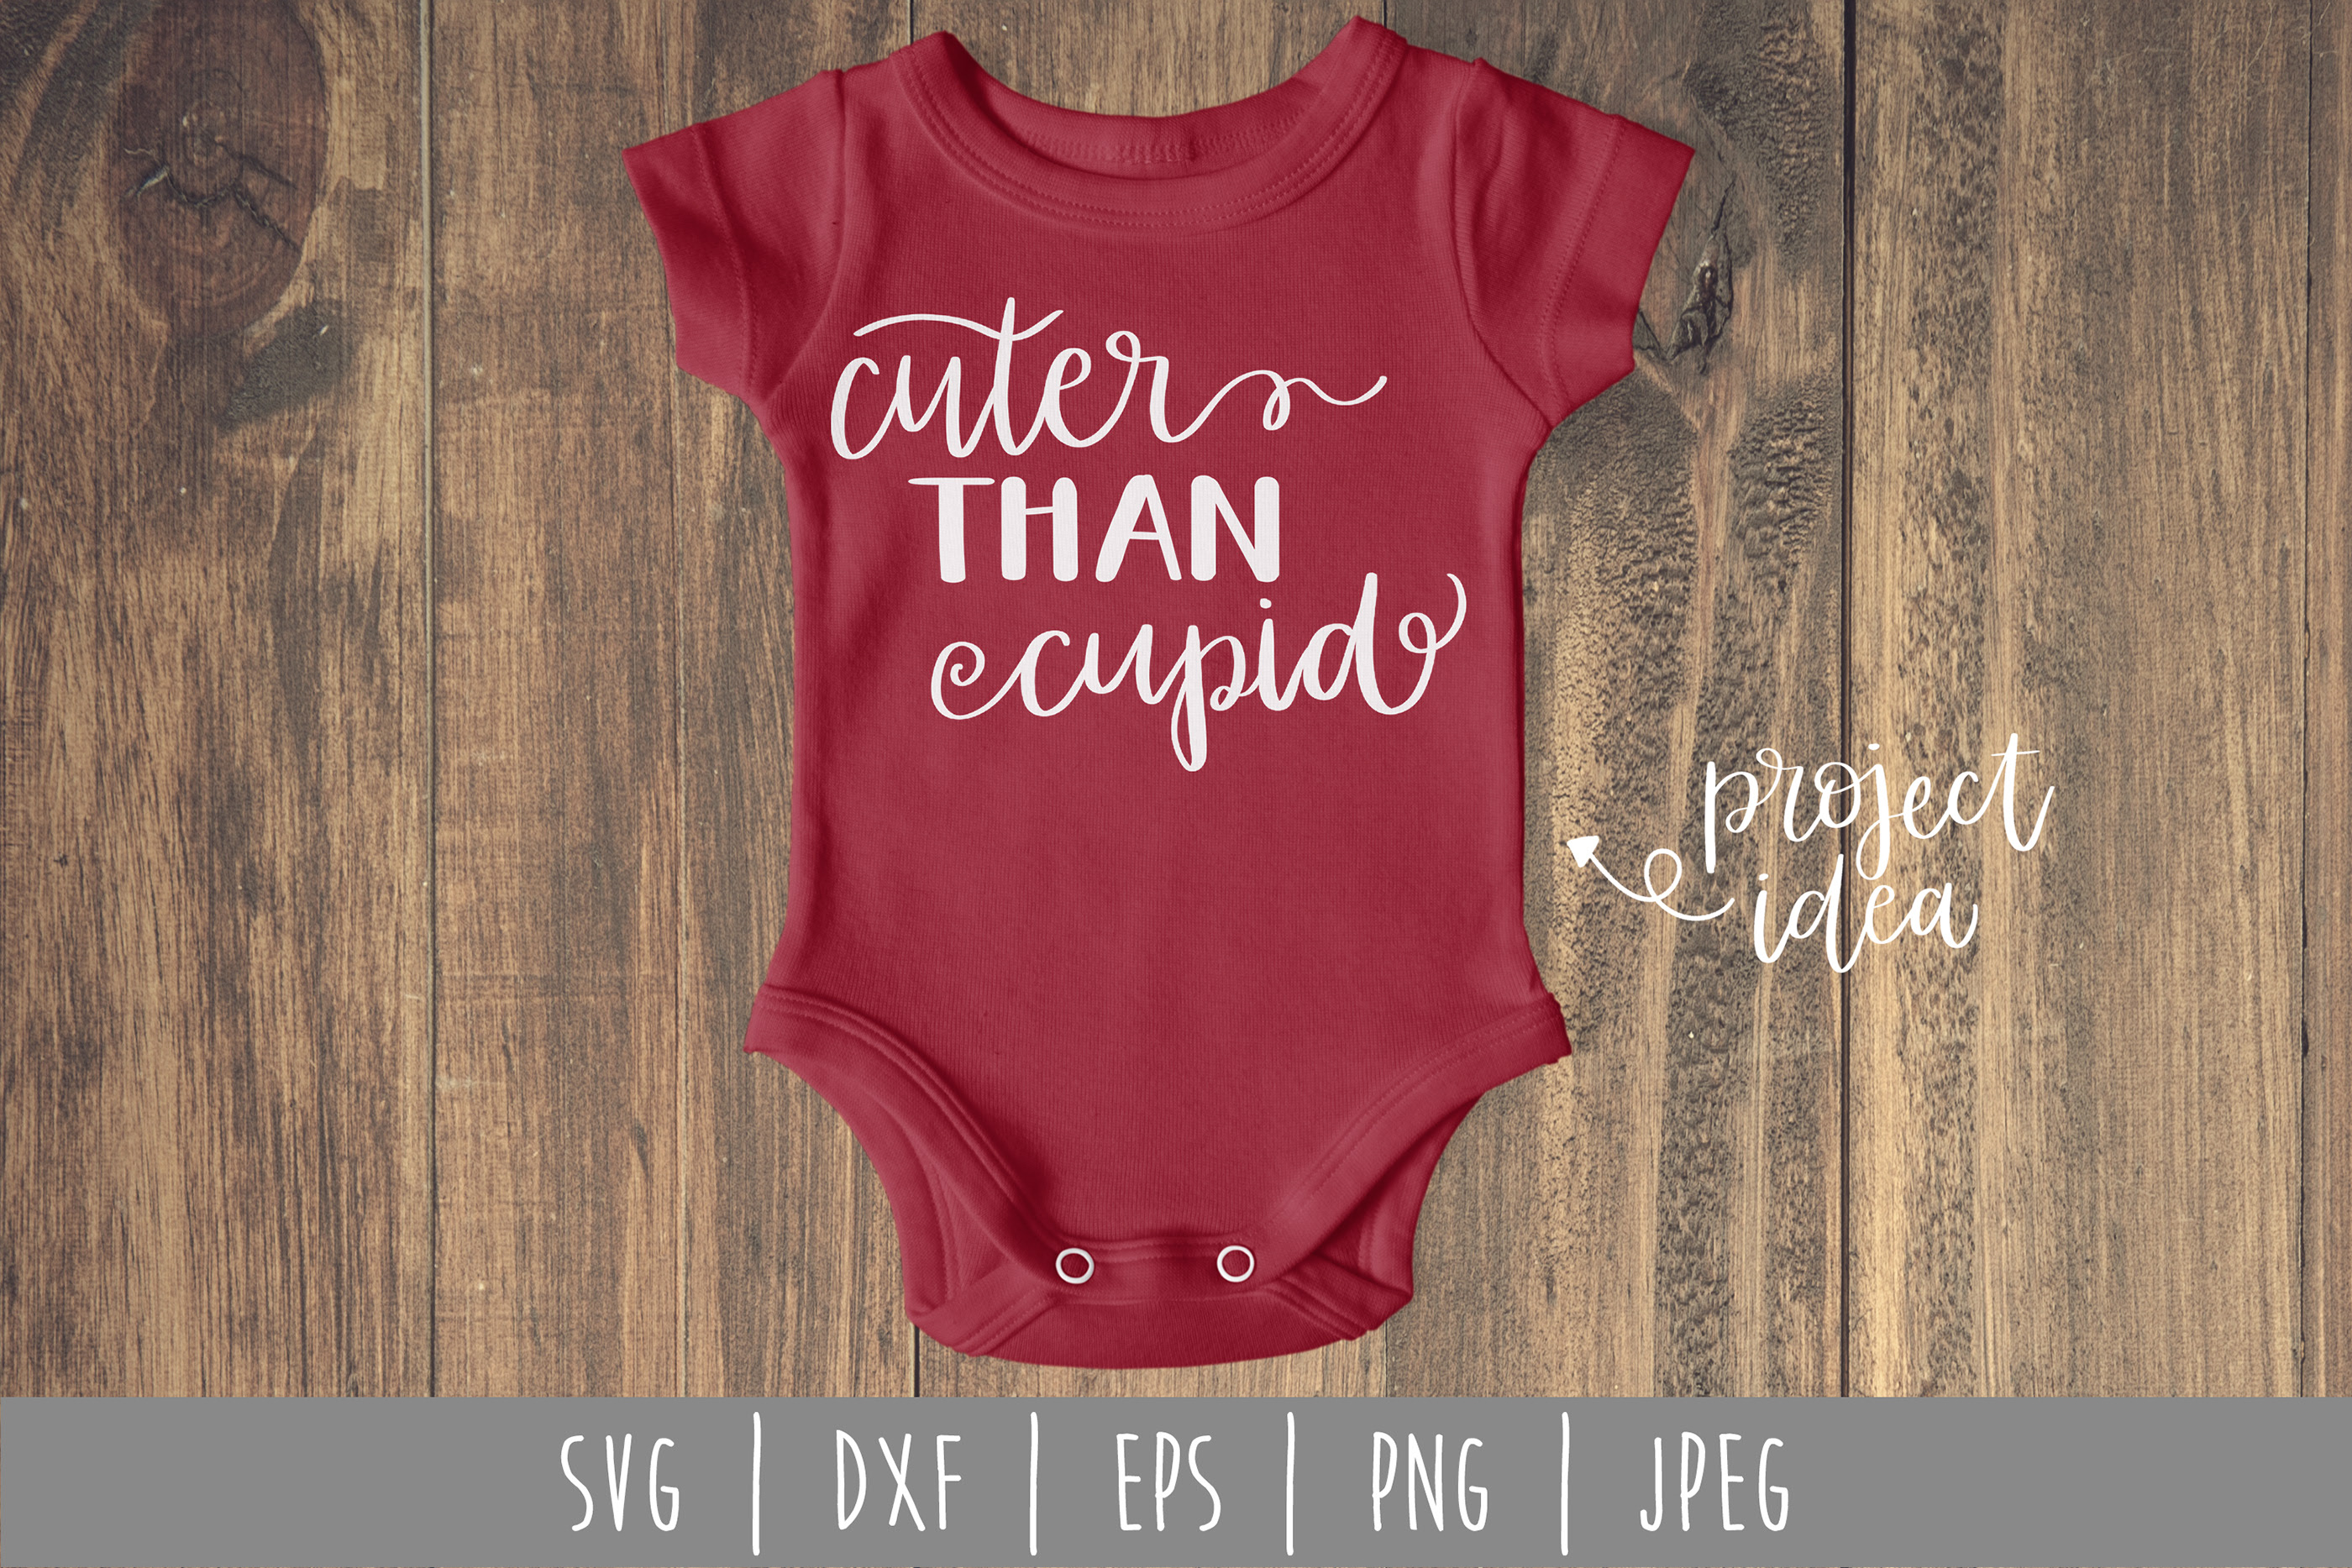 Cuter Than Cupid Hand Lettered Svg Dxf Eps Png Jpeg On Behance